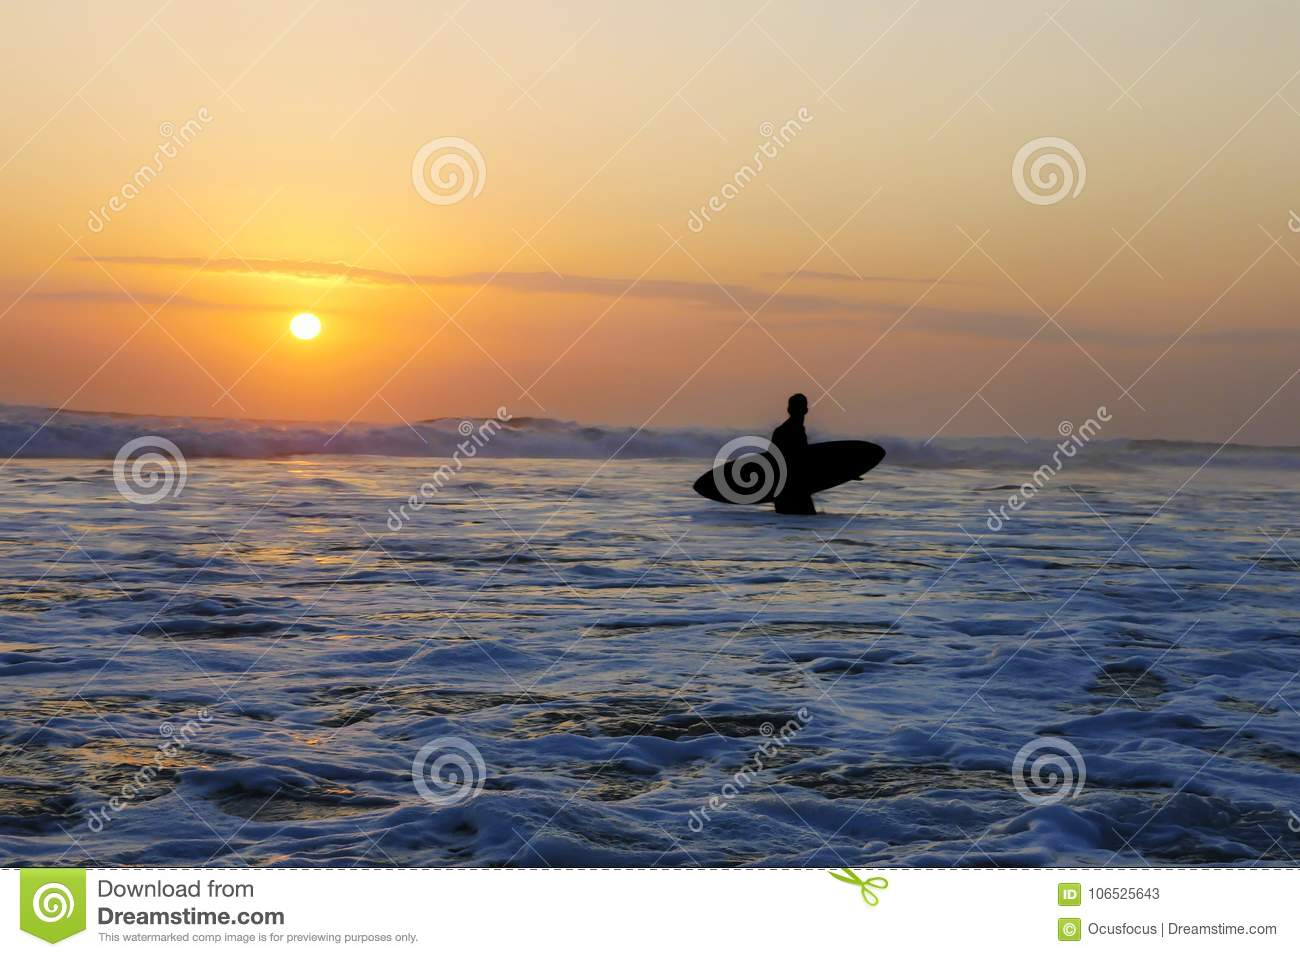 Silhouette of unknown anonymous surfer holding surf board after surfing on sunset with amazing beautiful sunlight with orange sky